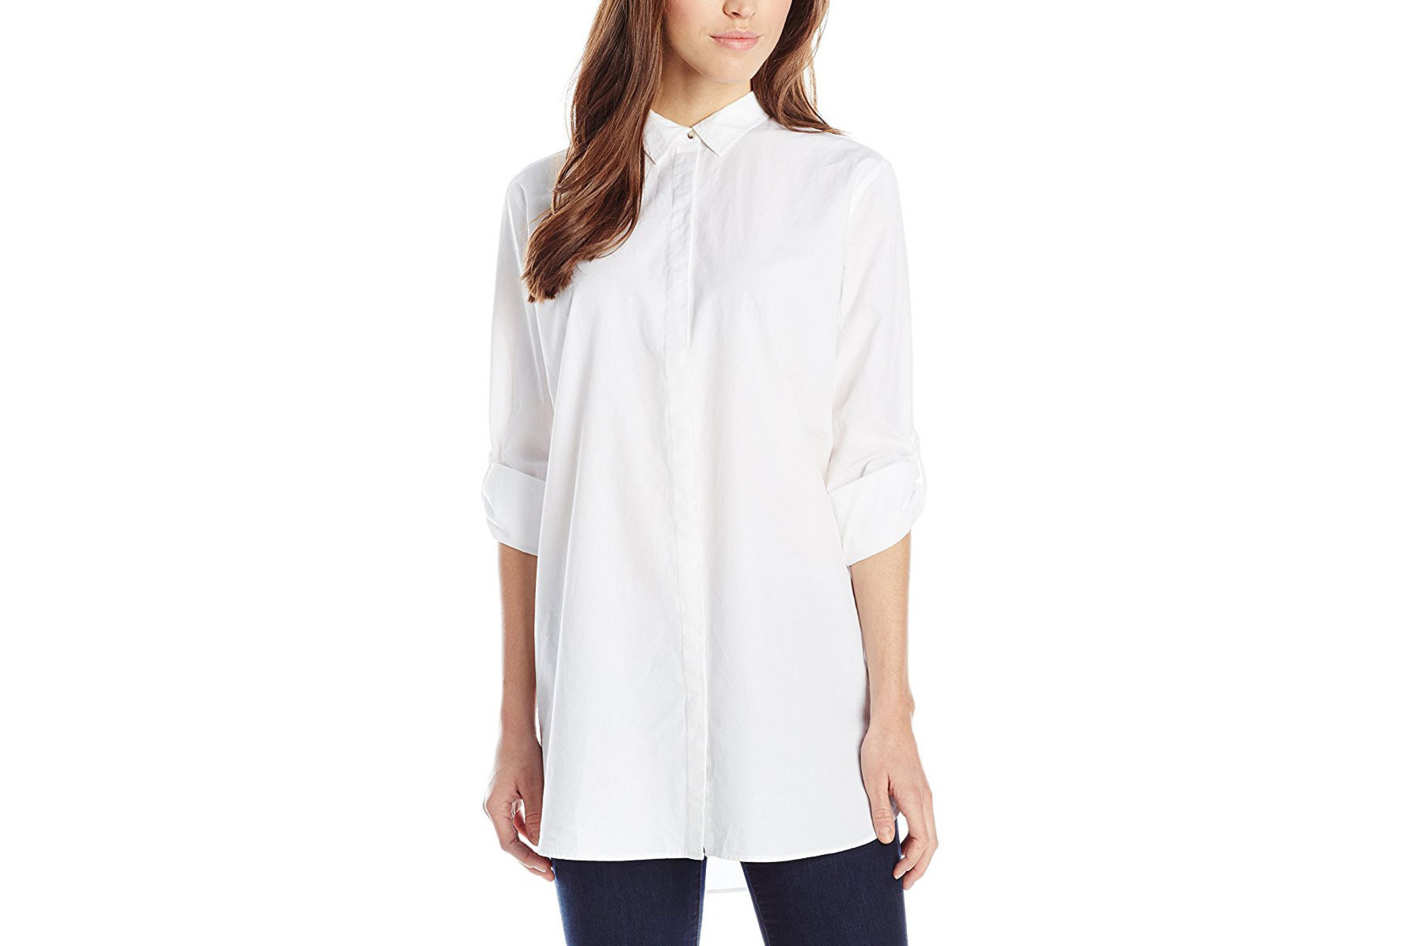 934d72bb1d2 Best White Button-down Shirts for Women